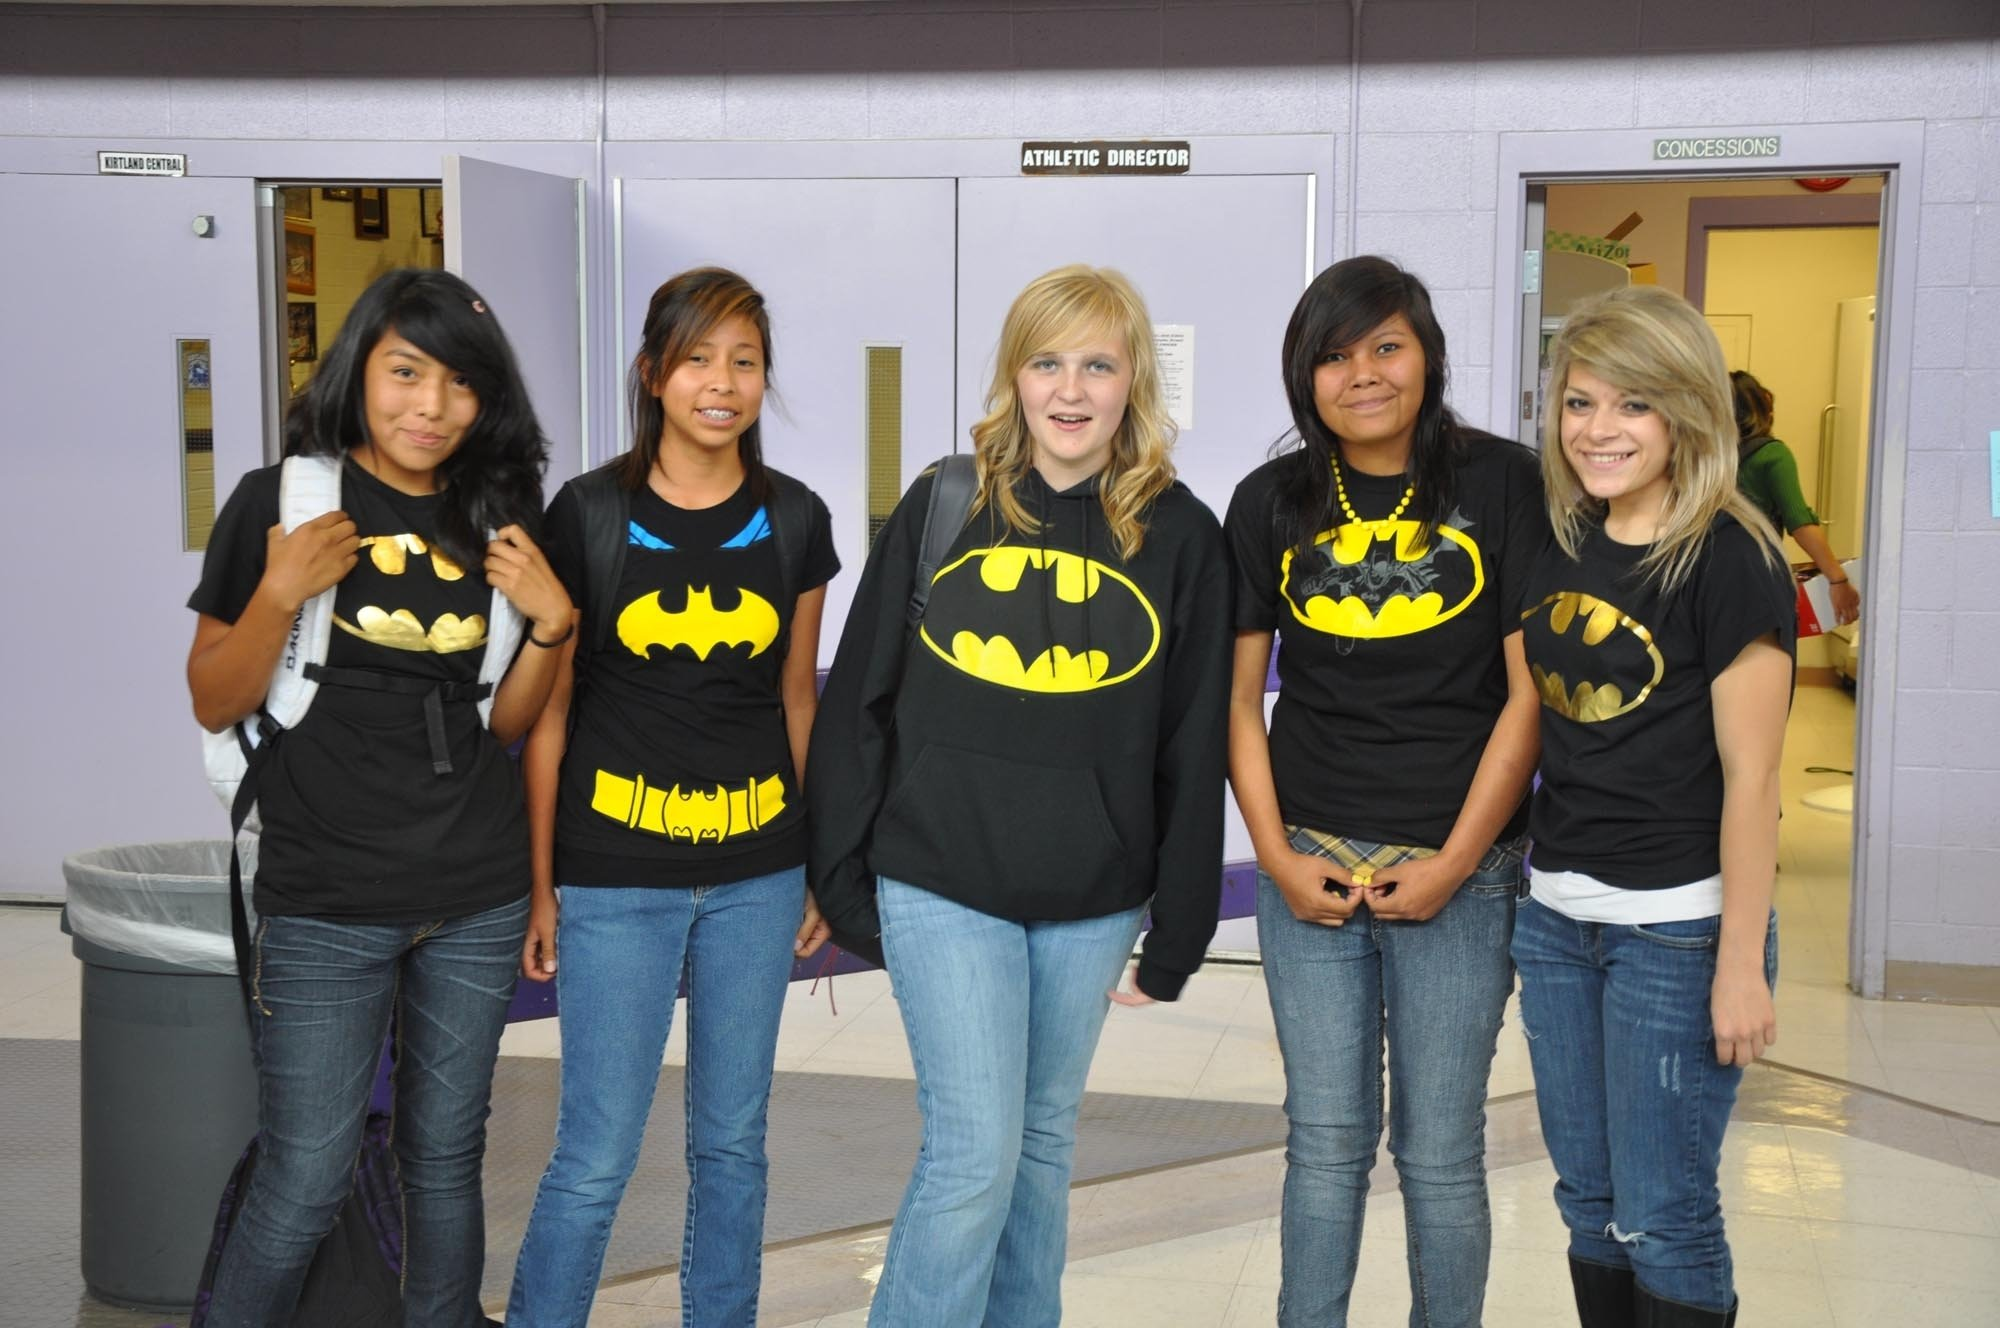 10 Cute Superhero Day Ideas At School homecoming 2010 2020